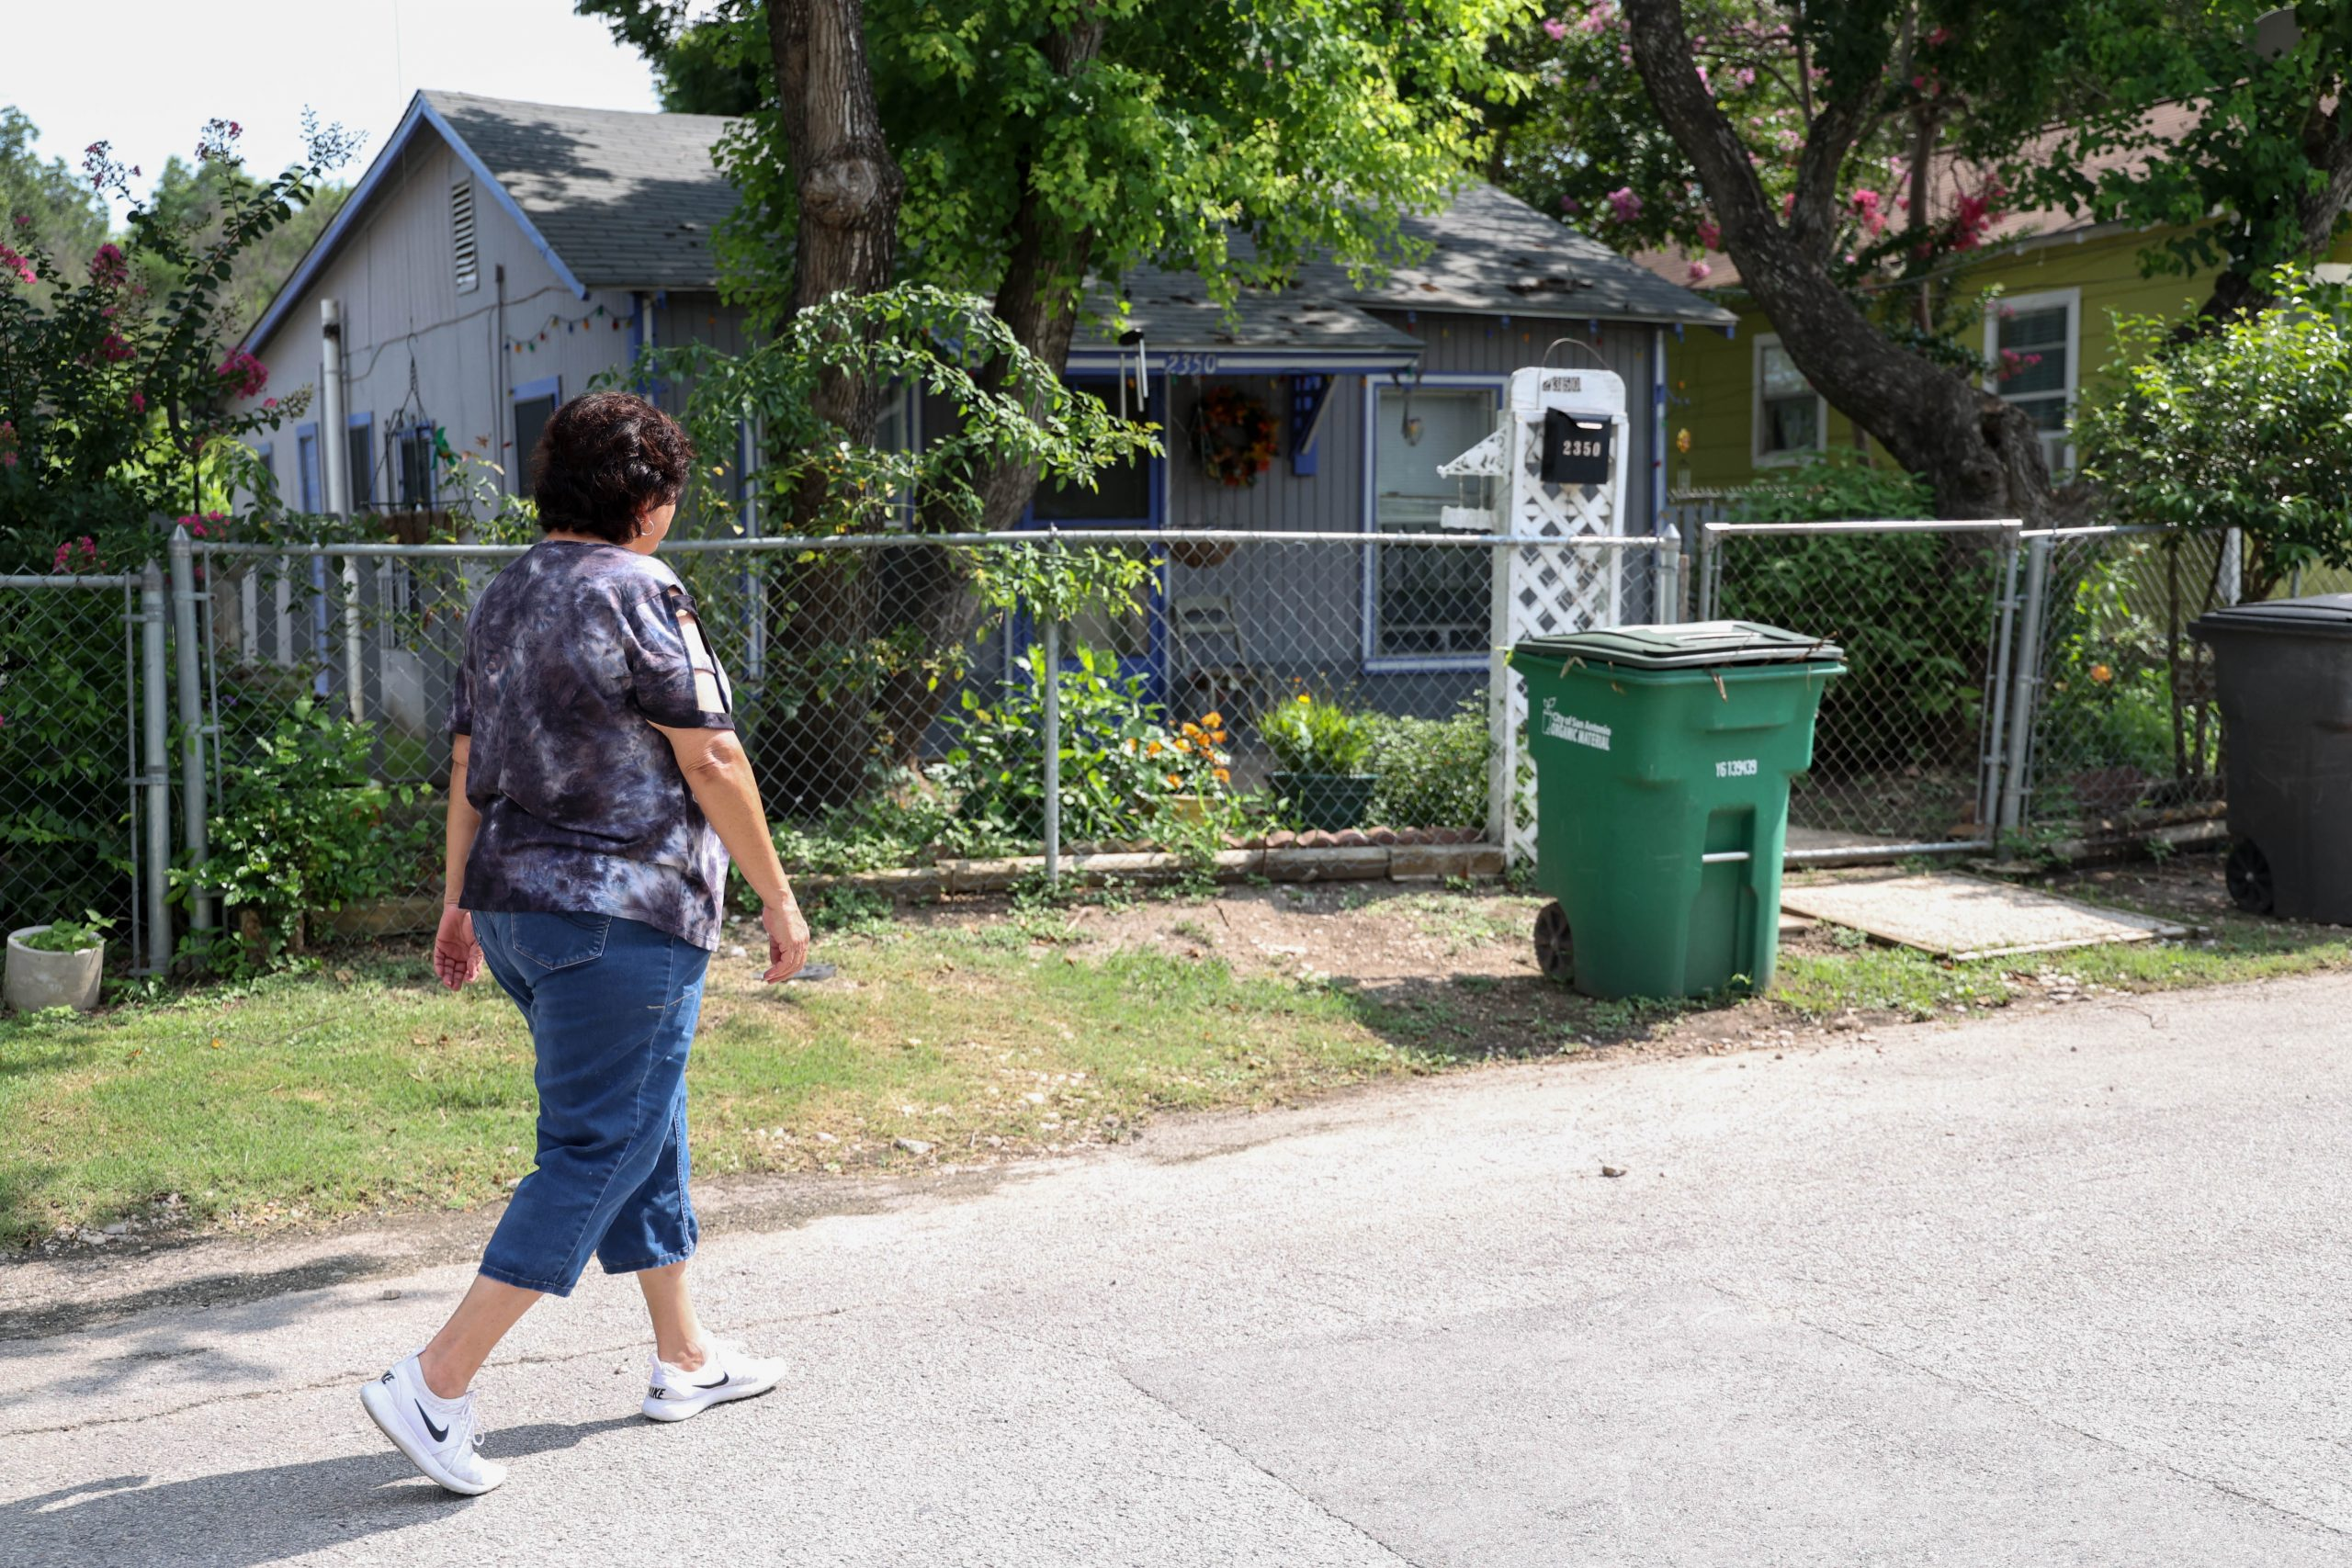 Rosie Baca still walks over to her late mother's home on the next block from her house to check on it from time to time.